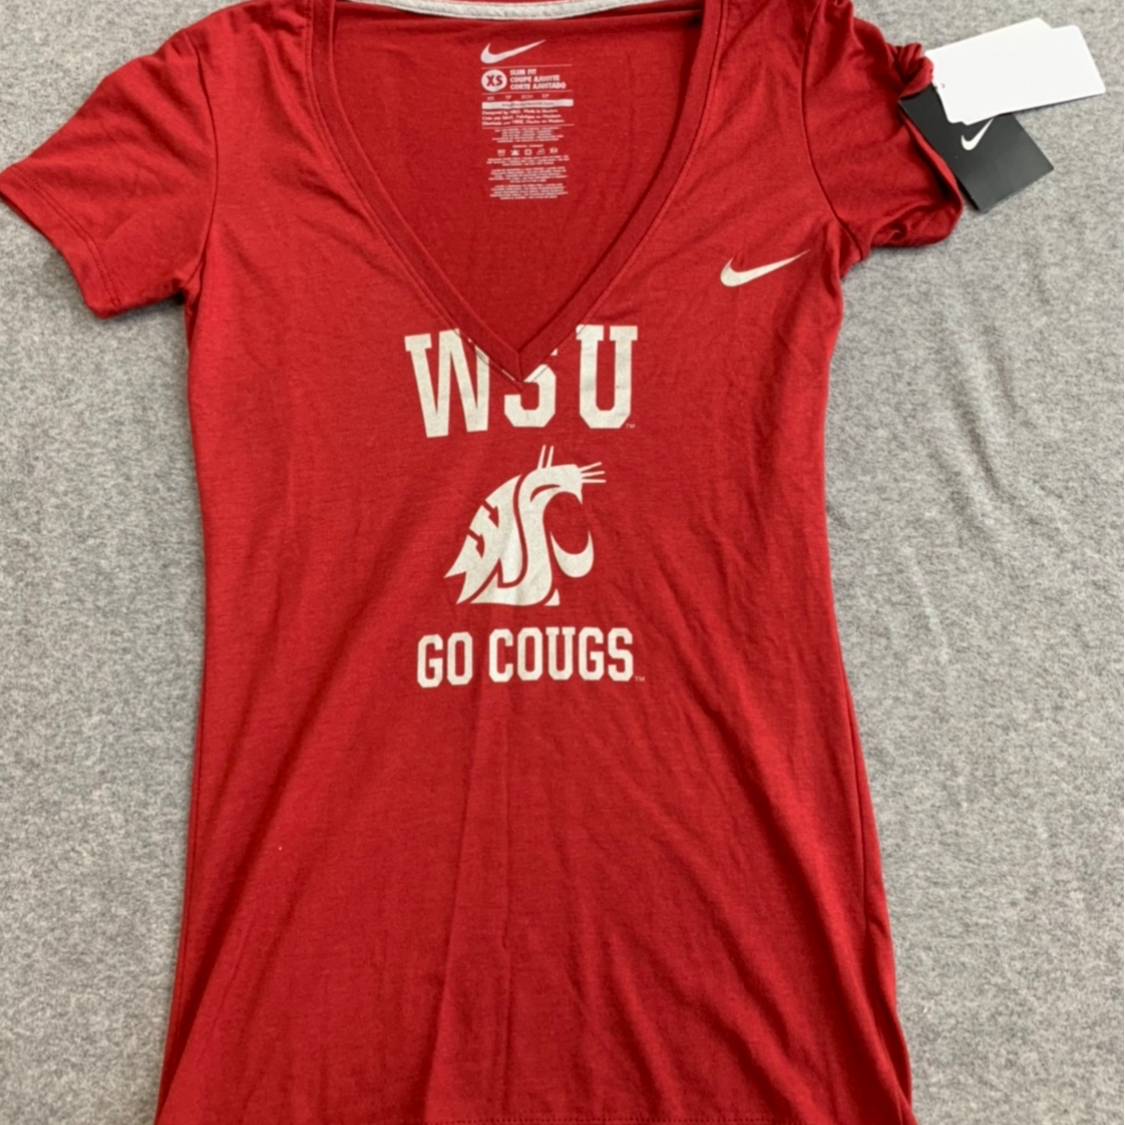 Nike WSU Crimson V-neck with Silver Lettering